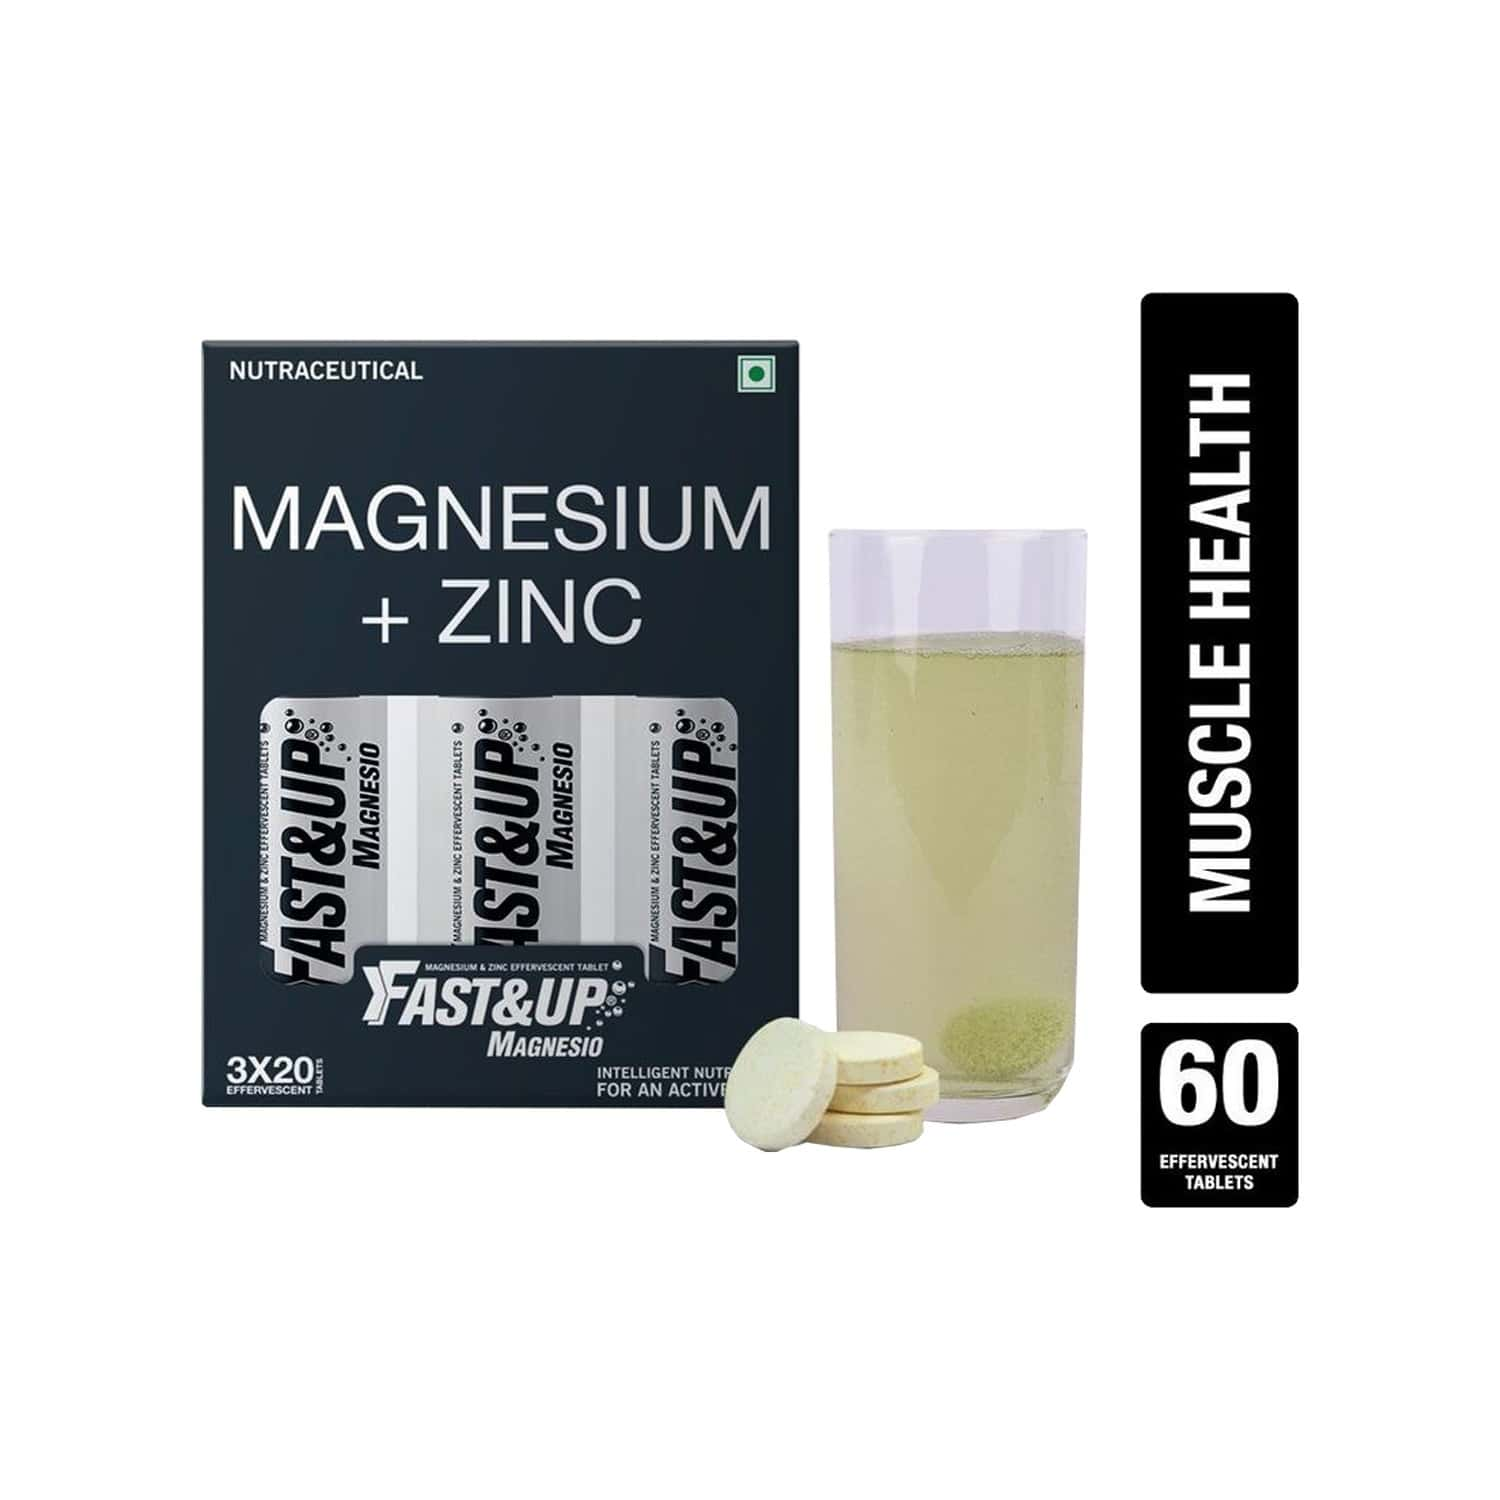 Fast&up Magnesio Lime & Lemon Effervescent Tablets Bottle Of 60